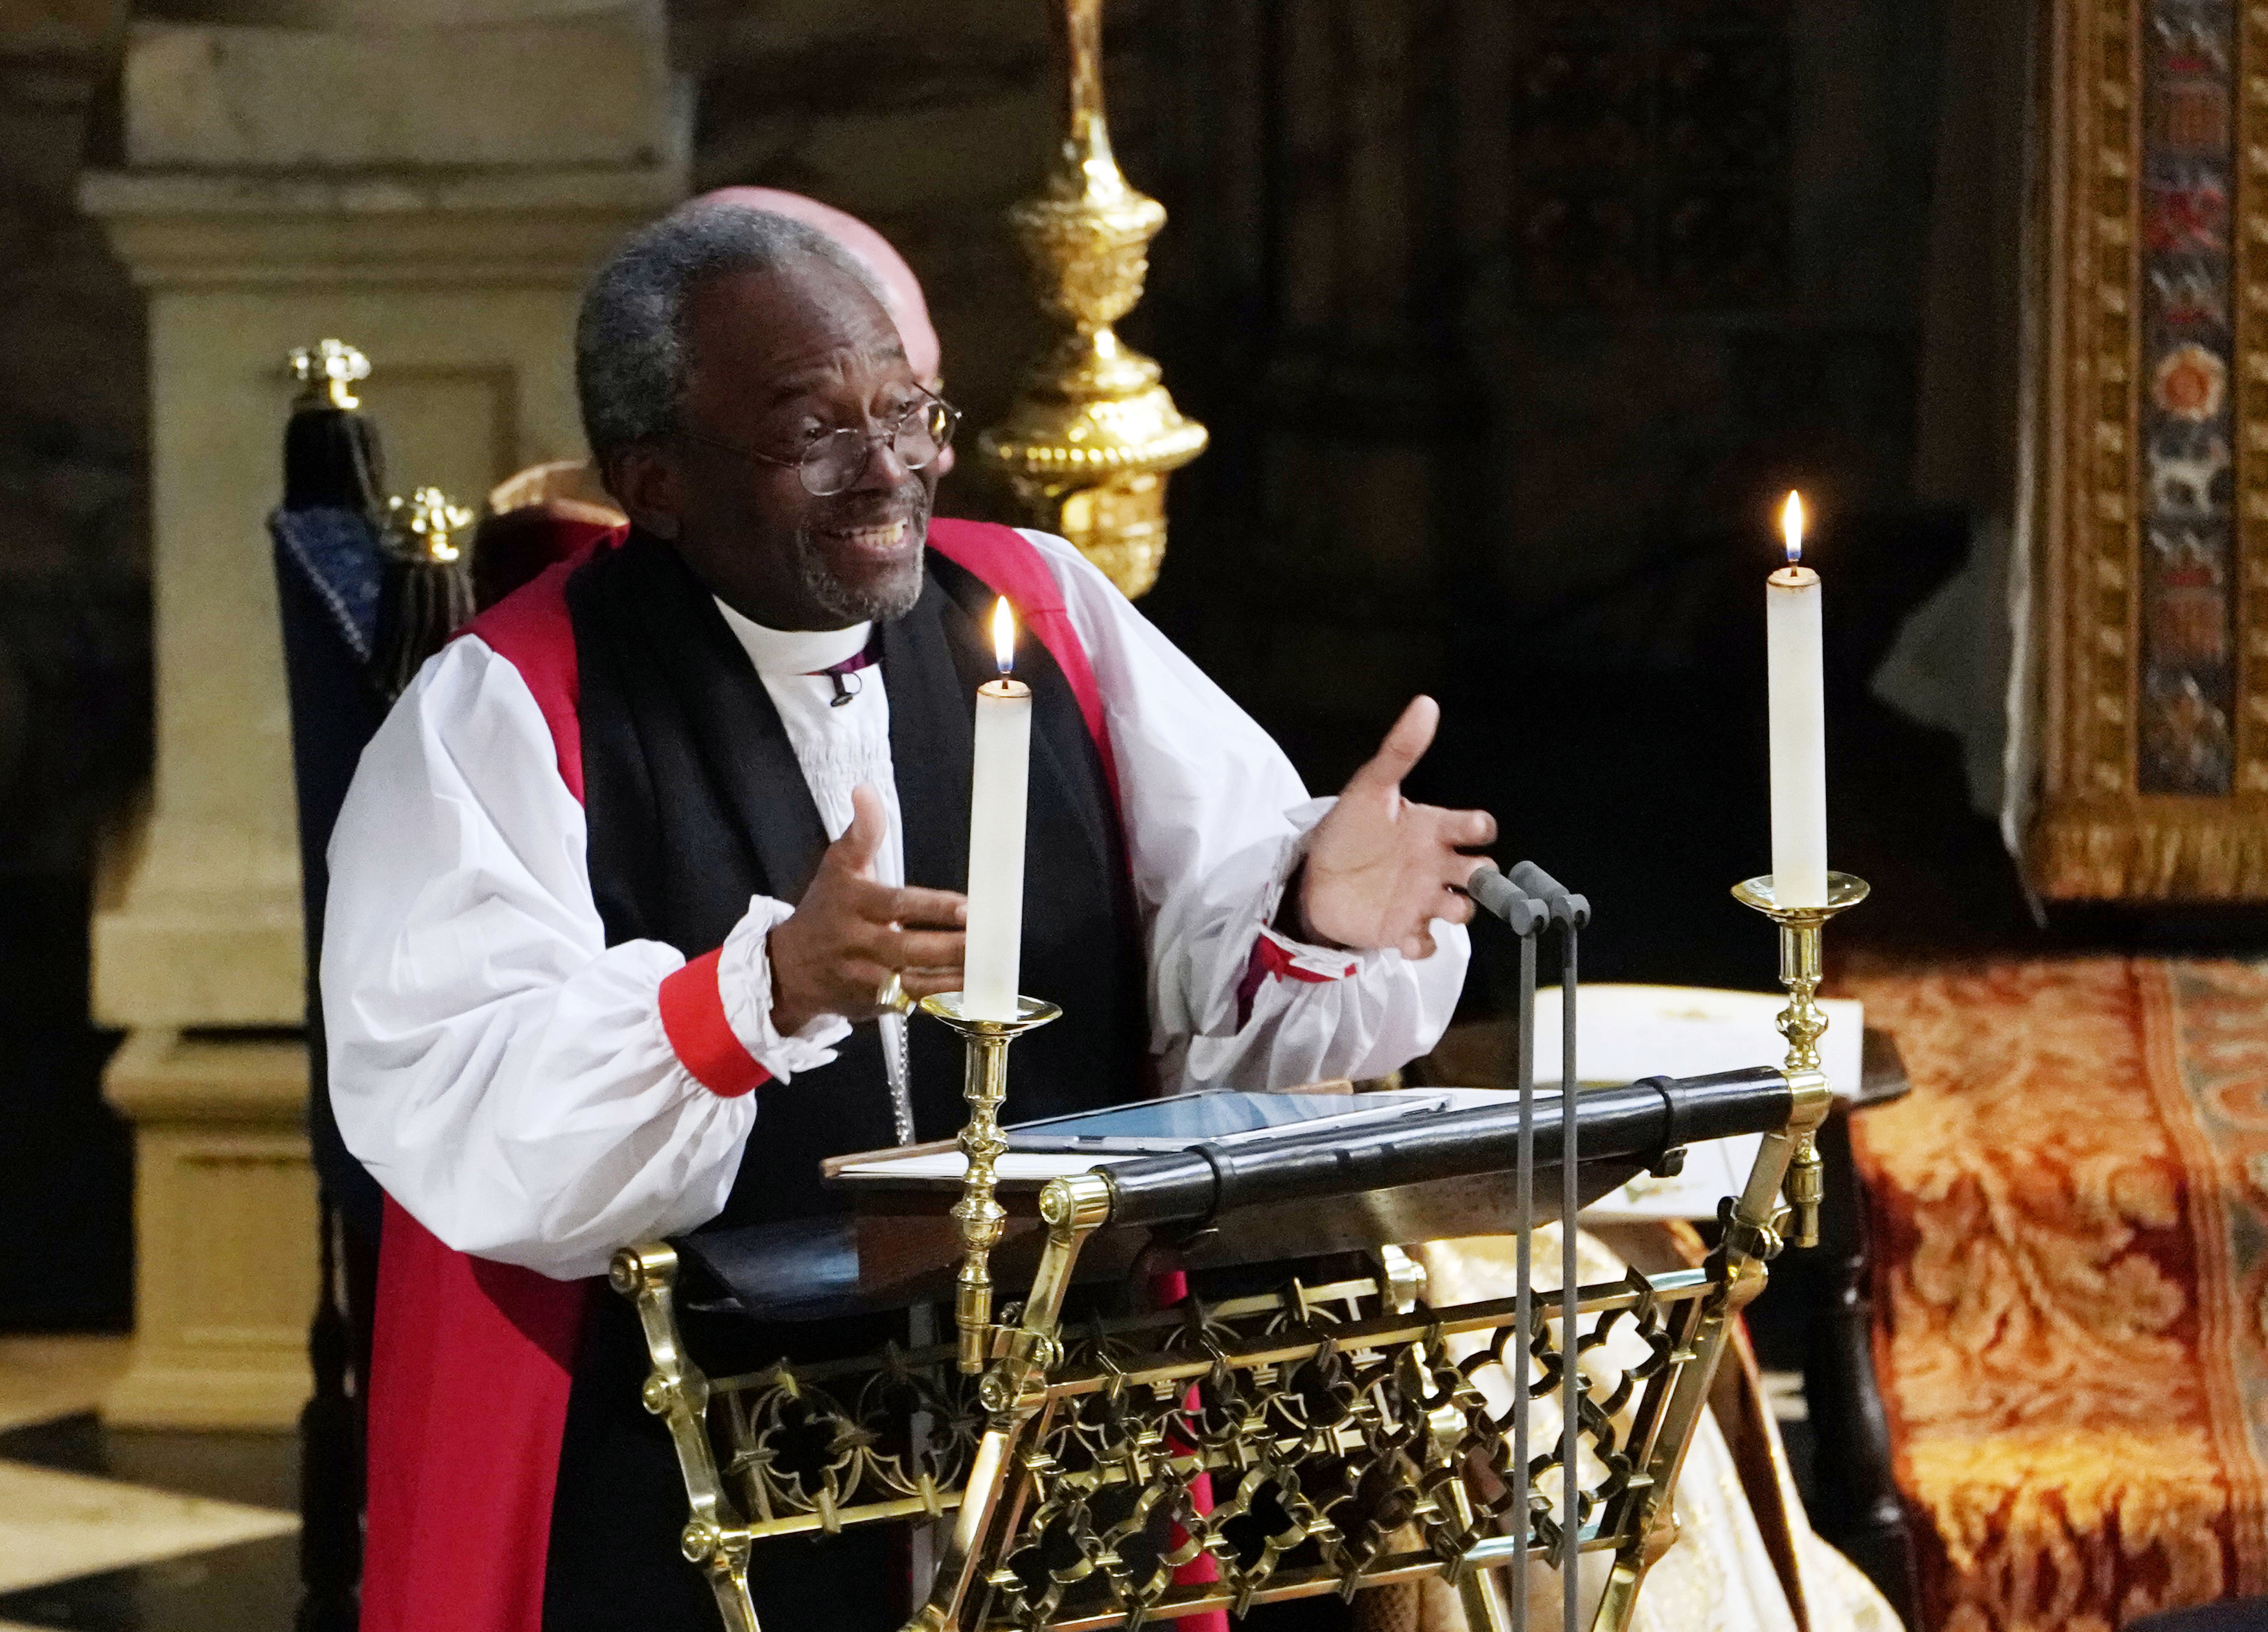 Bishop Michael Curry, Presiding Bishop of the Episcopal Church